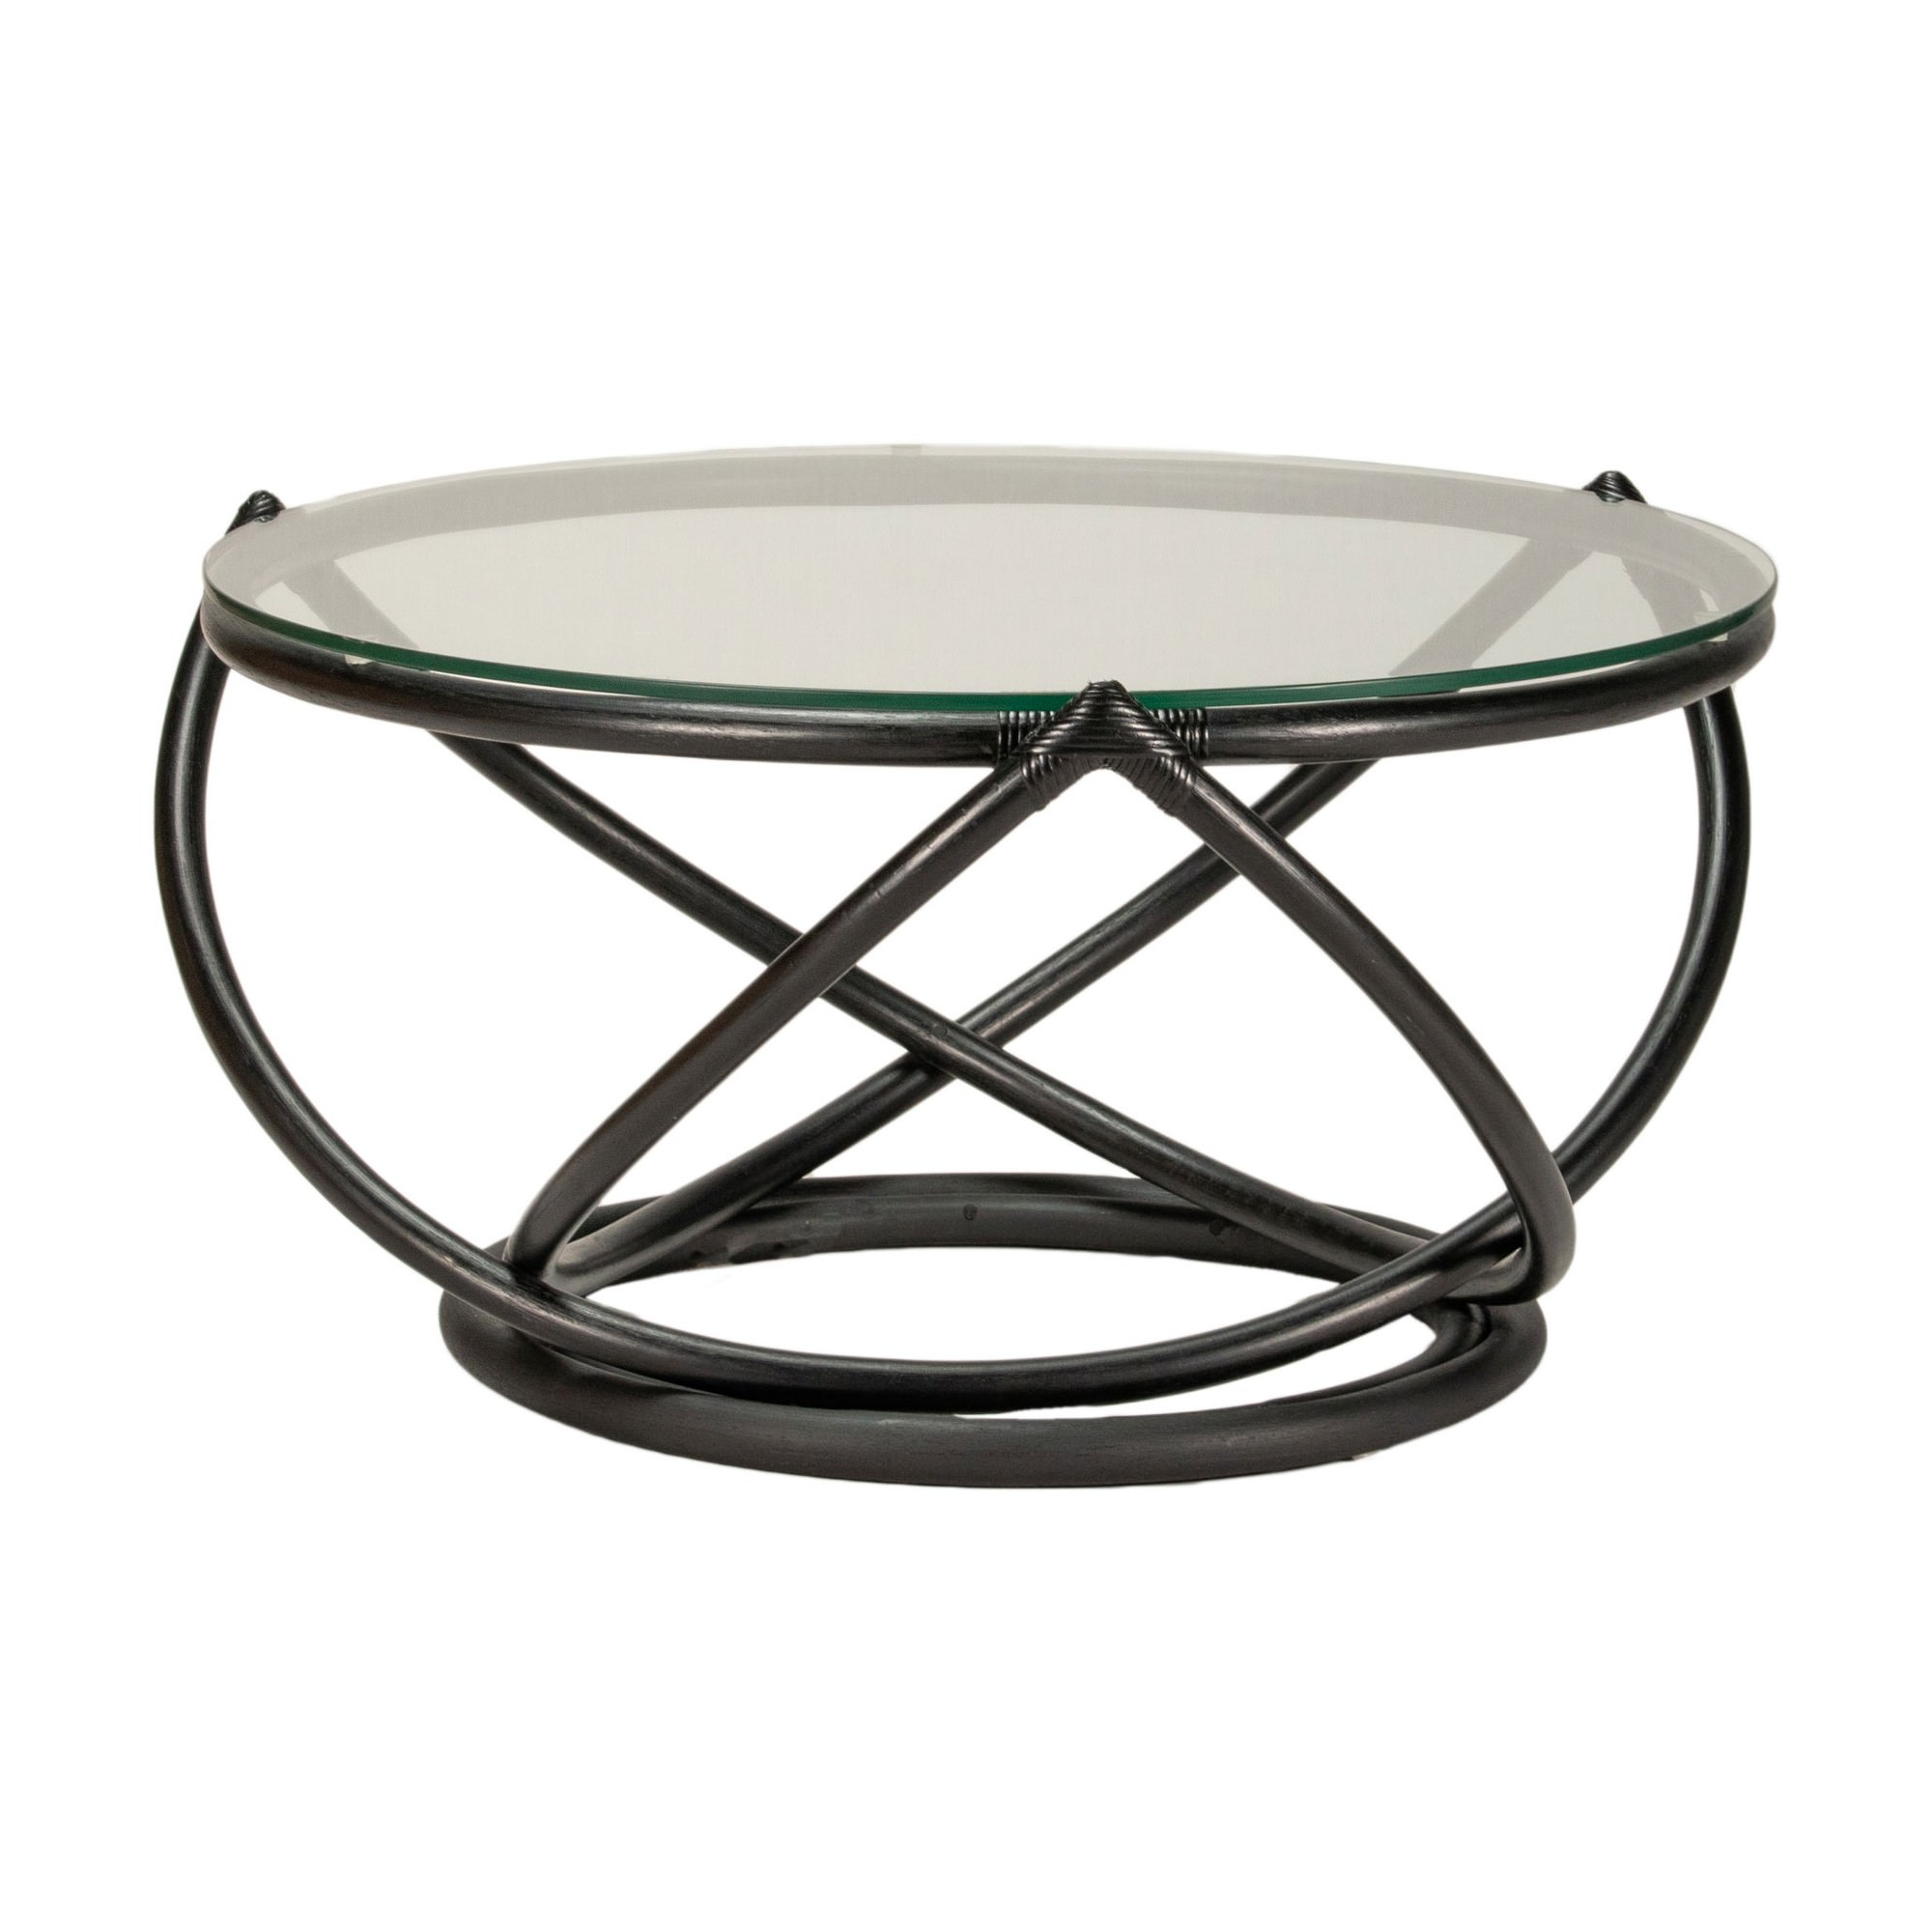 Caicos Glass Topped Rattan Round Coffee Table, 85cm, Black